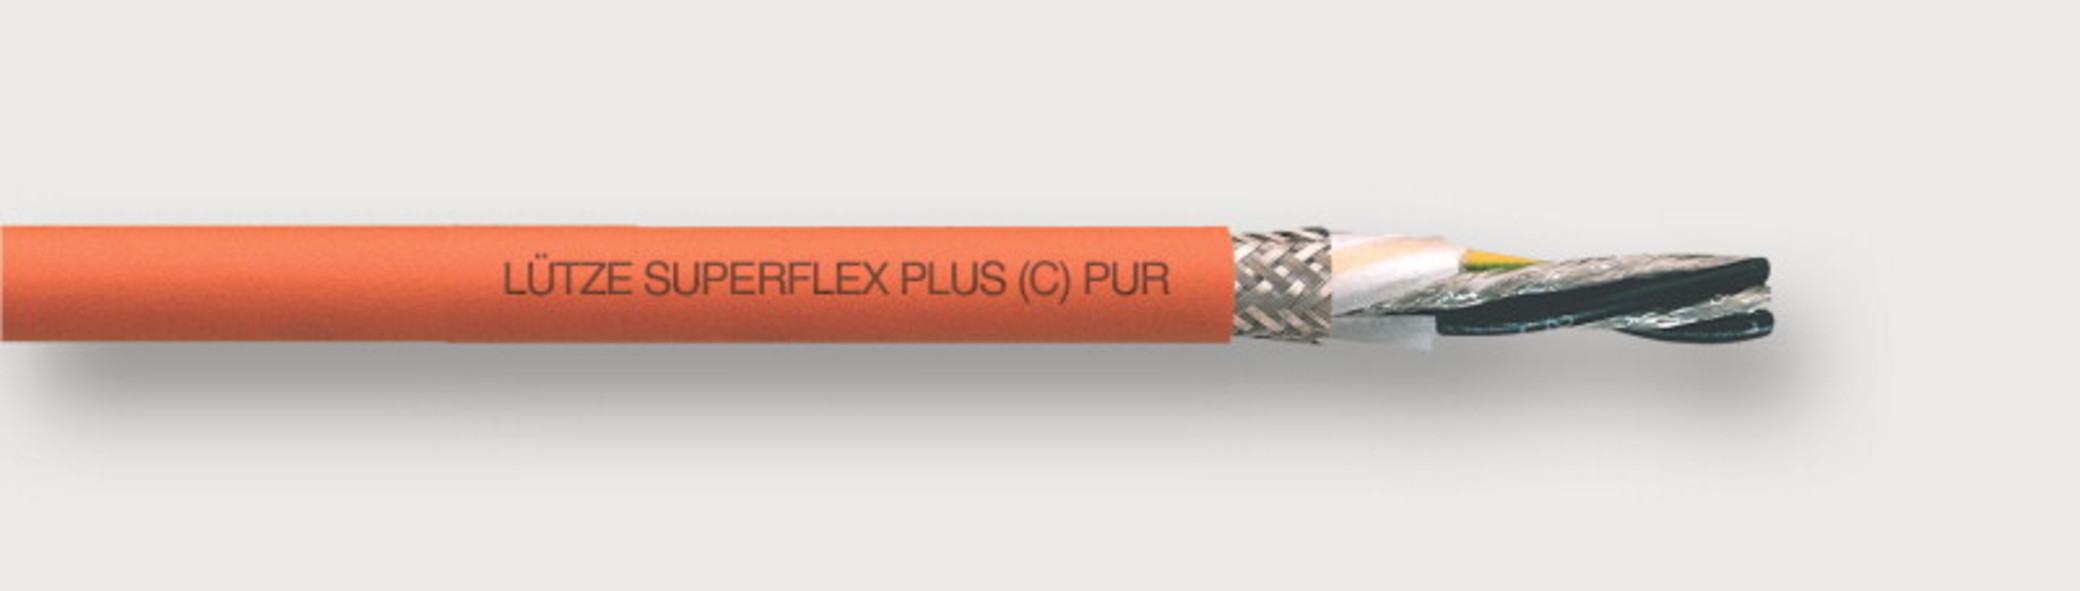 111270 - LÜTZE SUPERFLEX® PLUS M (C) PUR SERVO 0.6/1 kV Supply line for Bosch Rexroth and other systems For highest requirements